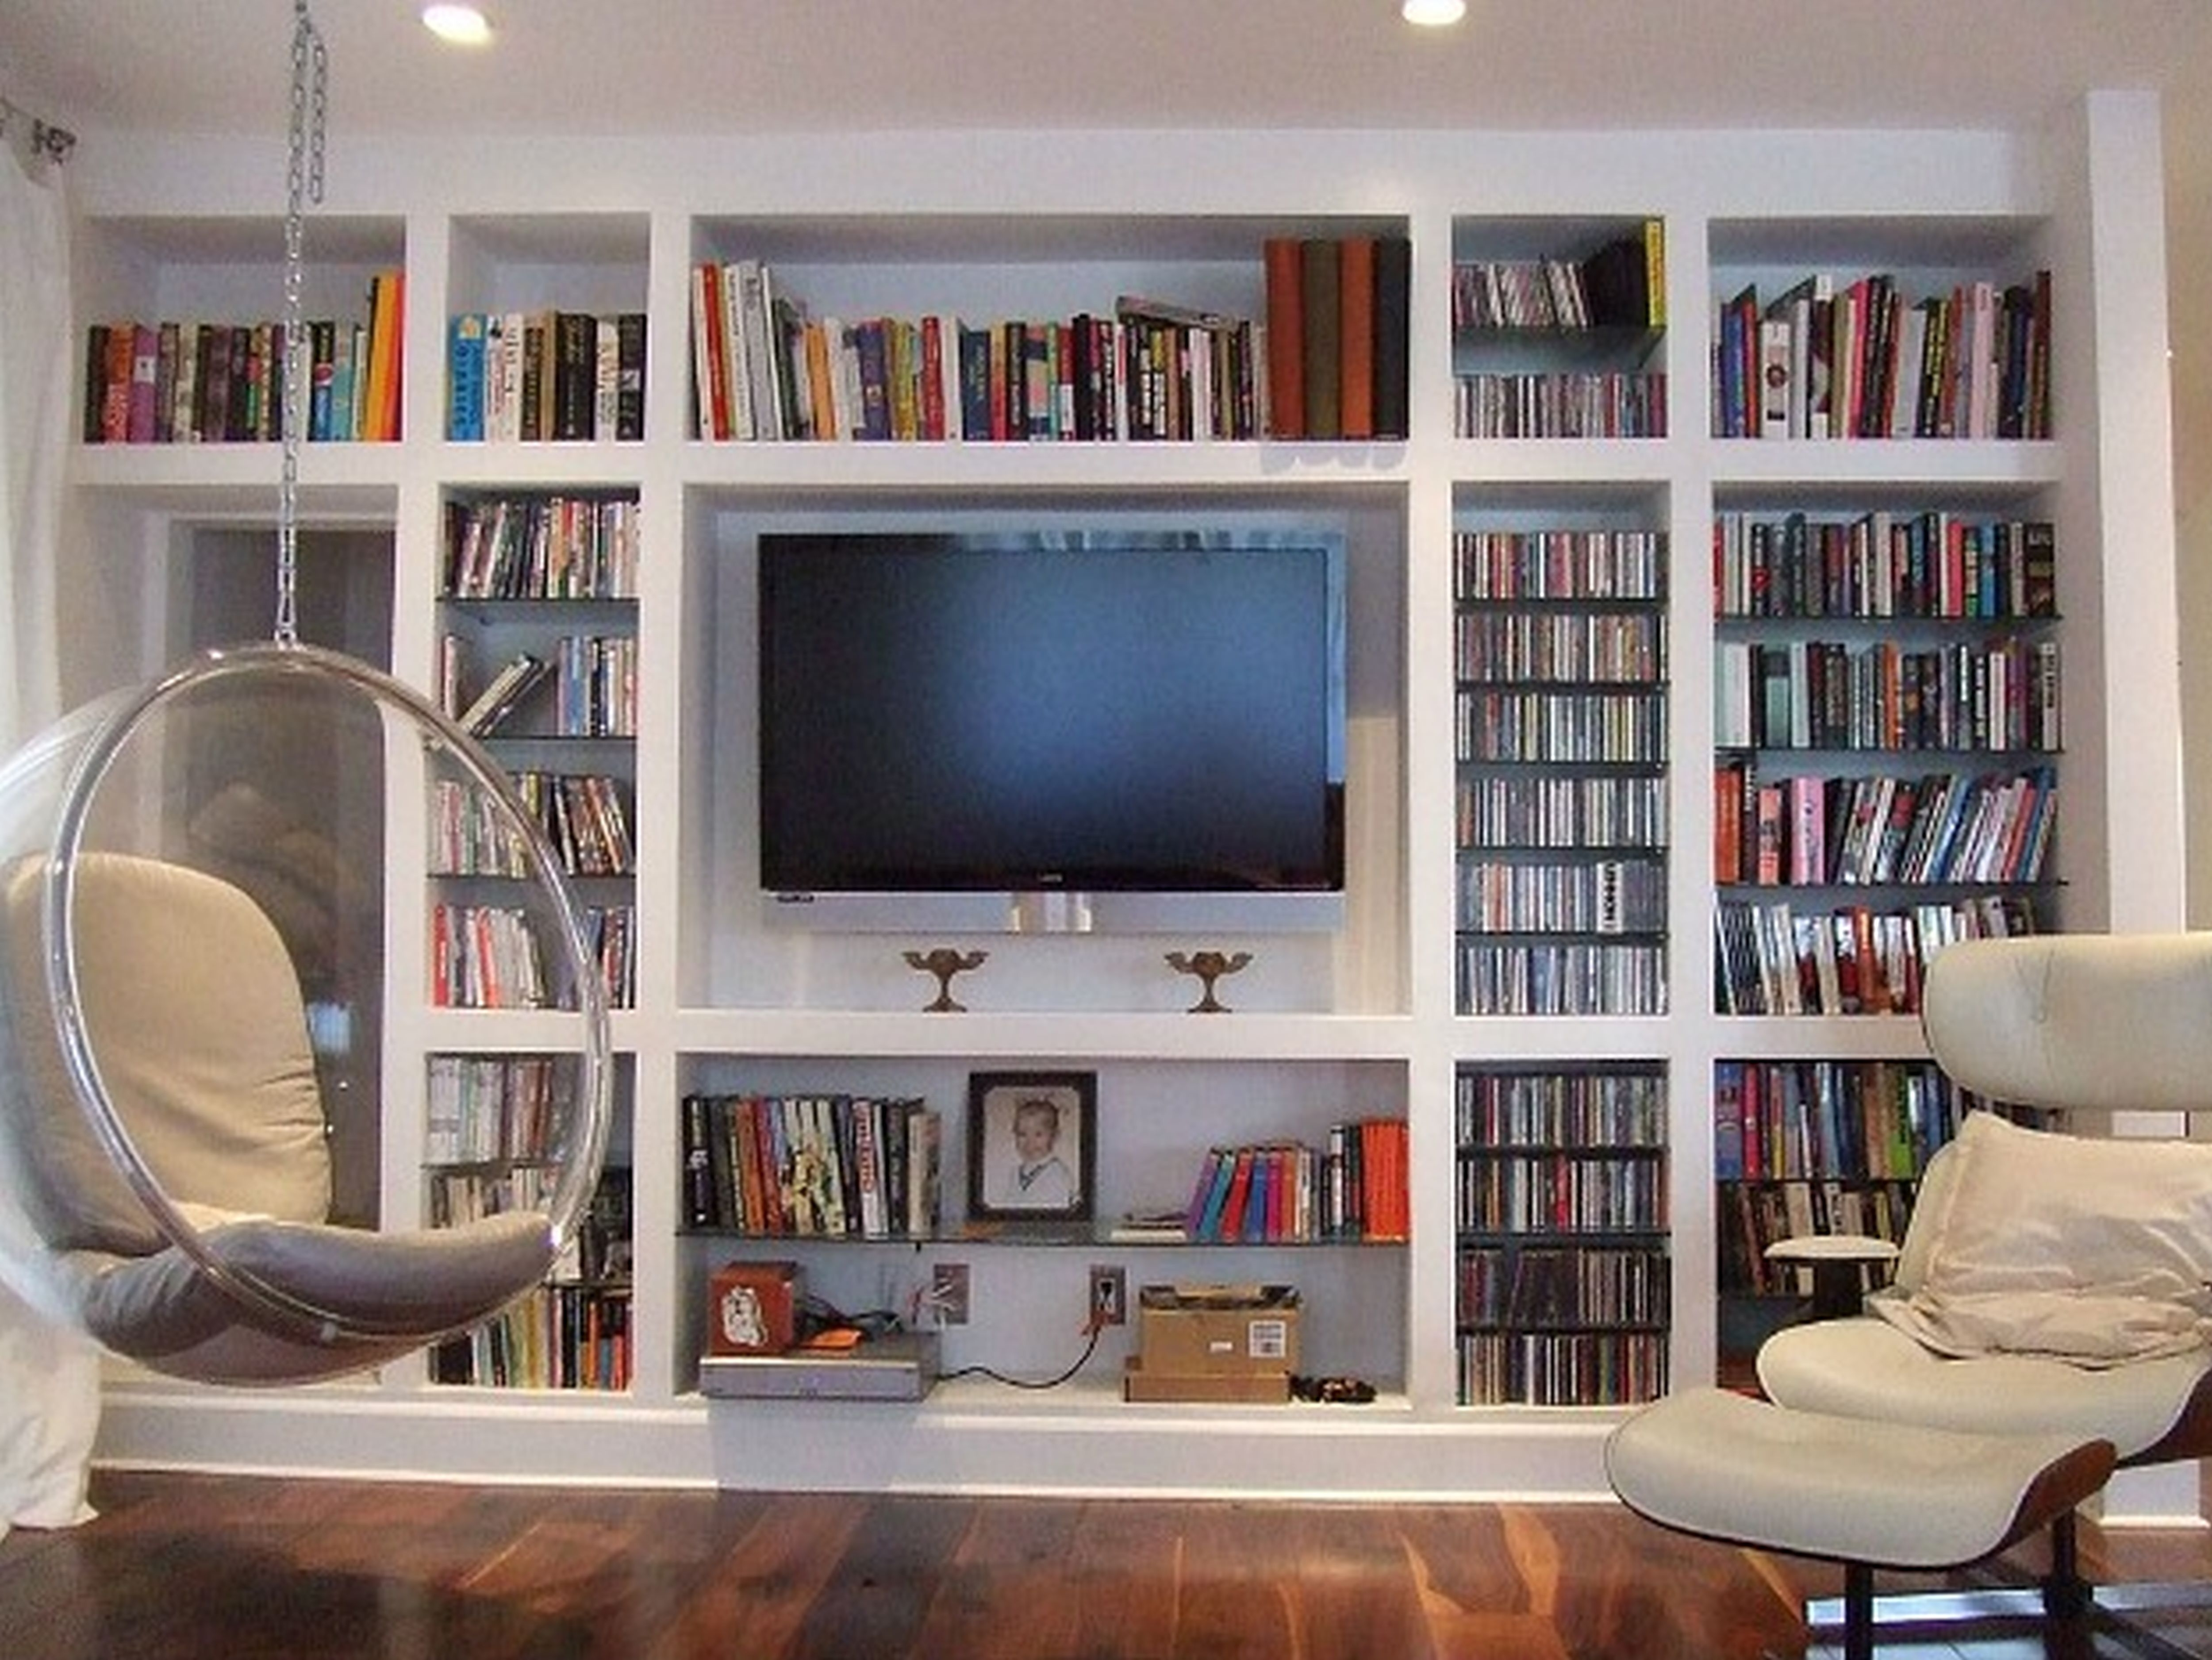 Most Recent Large Wall Bookshelf Design For Bedroom With Lounge Chair Regarding Chair Bookcases (View 10 of 15)